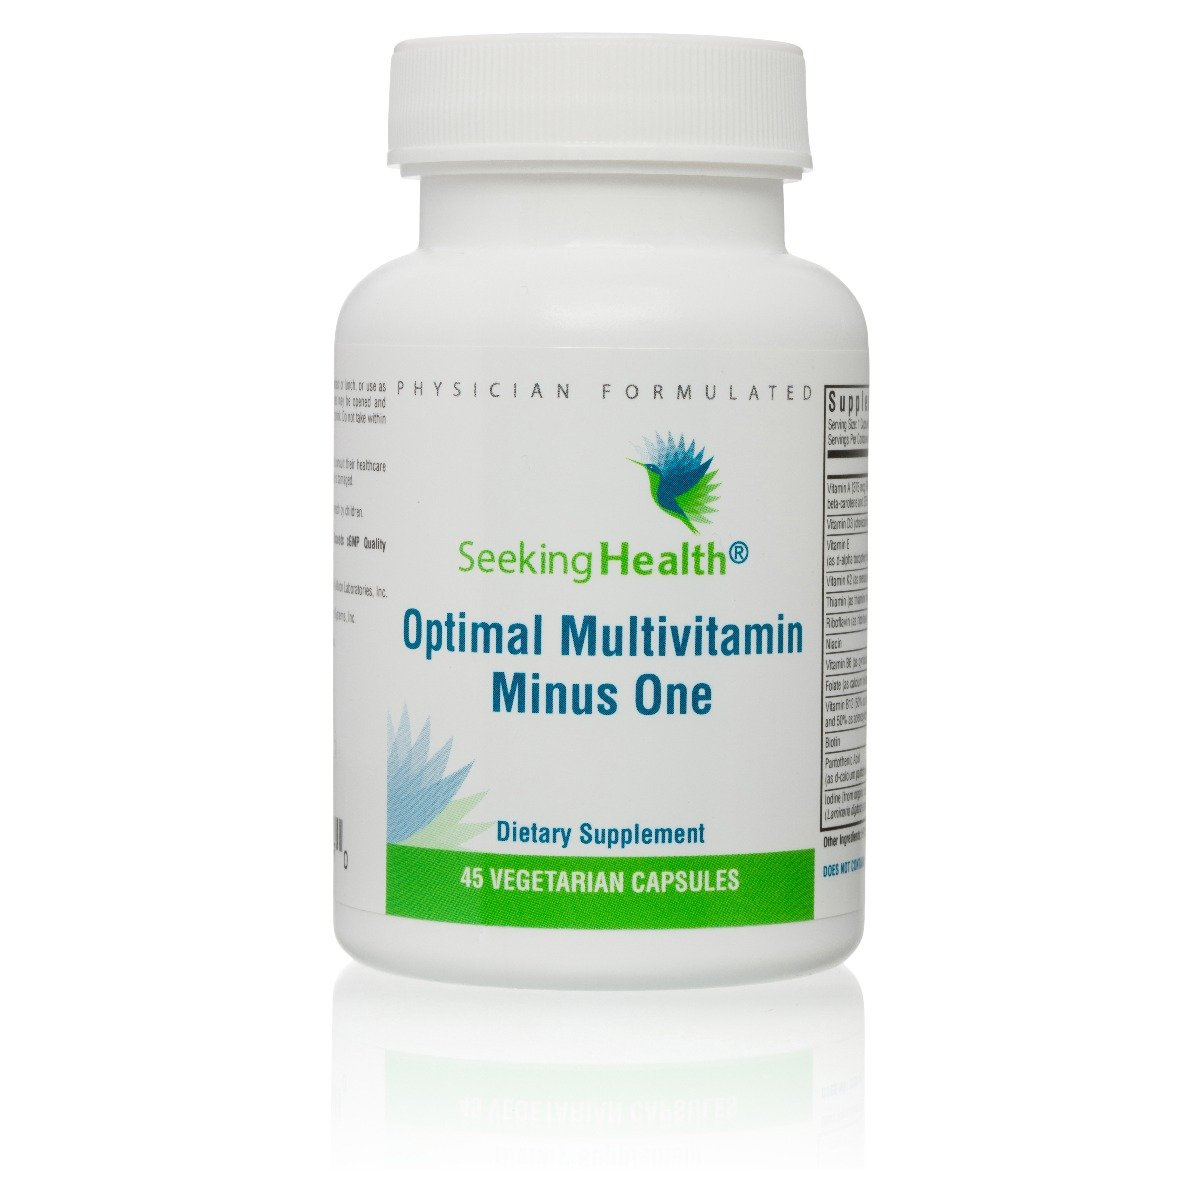 Optimal Multivitamin Minus One | 45 Capsules